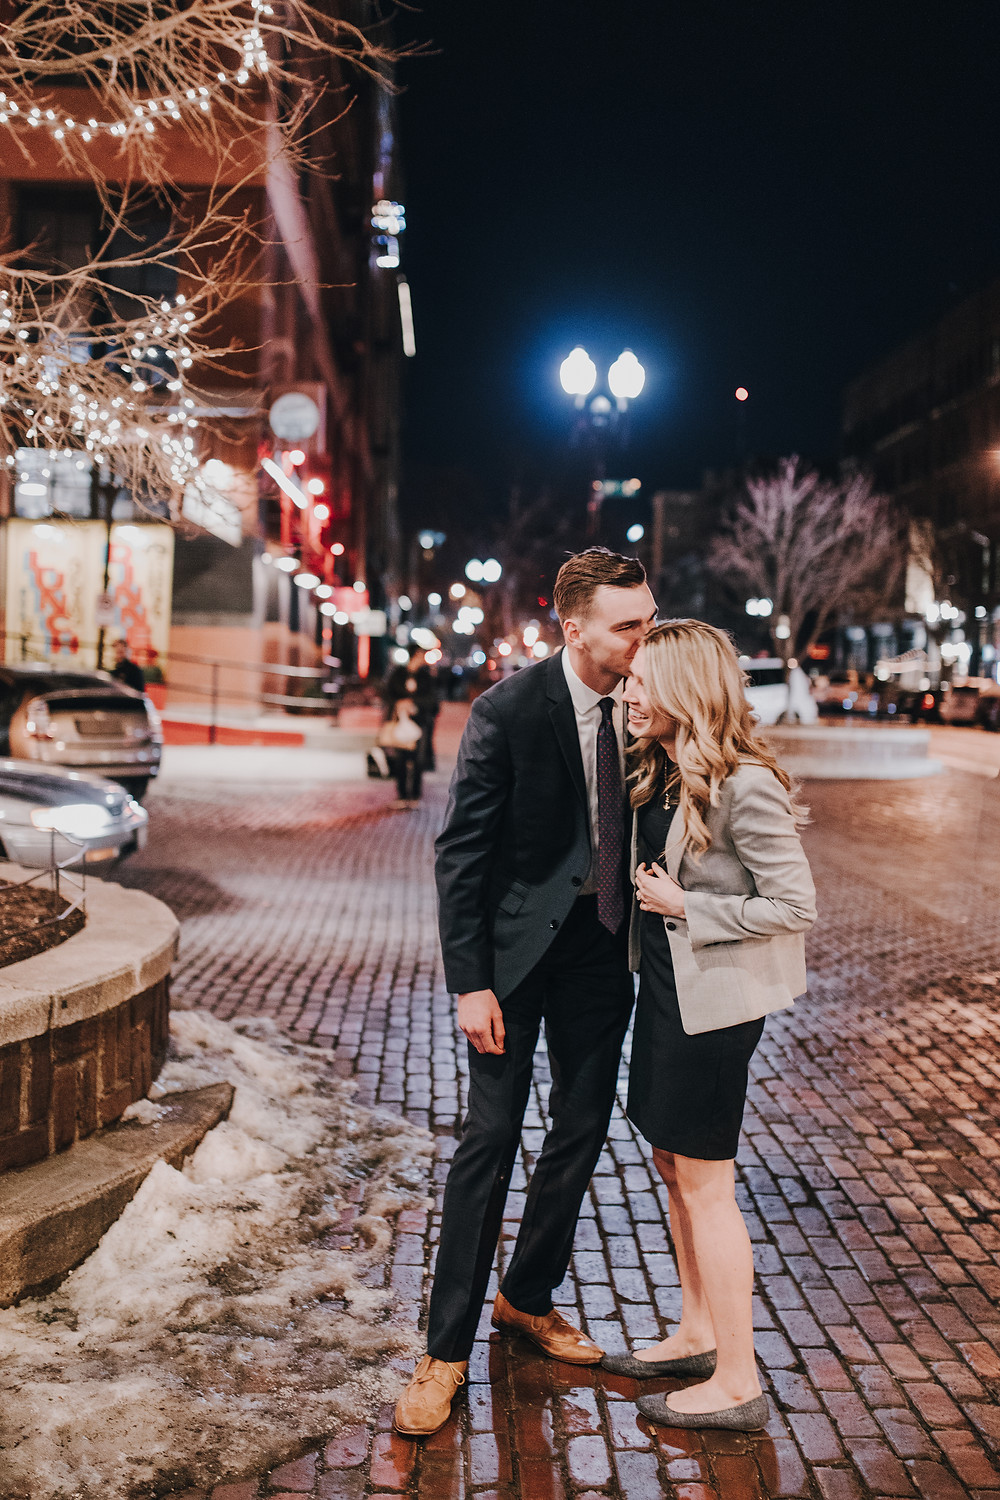 omaha wedding photographer, omaha photographer, nebraska photographer, photographer, senior photographer, photography, destination wedding photographer, wedding, proposal story, real weddings